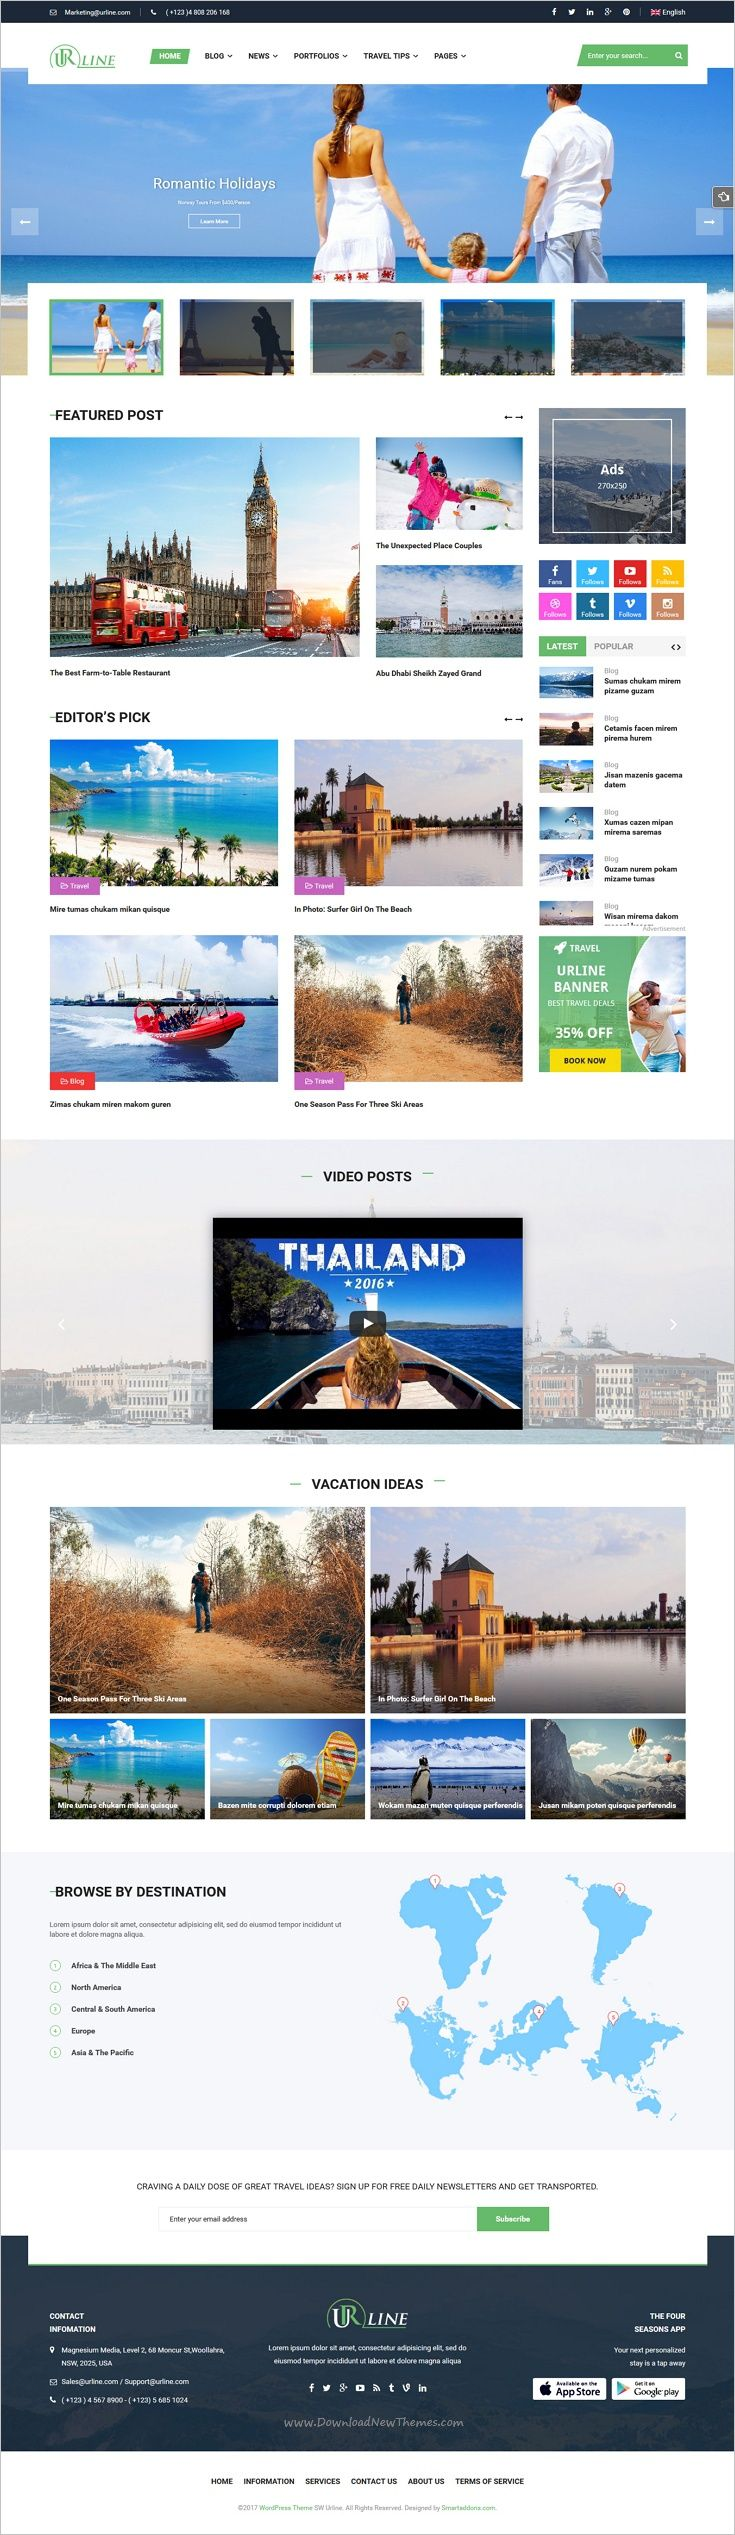 SW Urline is a classy, visually distinct and highly customizable responsive WordPress theme for #travel #magazine and #blog website with 3 homepage layouts download now➩ https://themeforest.net/item/urline-creative-wordpress-travel-news-and-magazine-theme/18009896?ref=Datasata